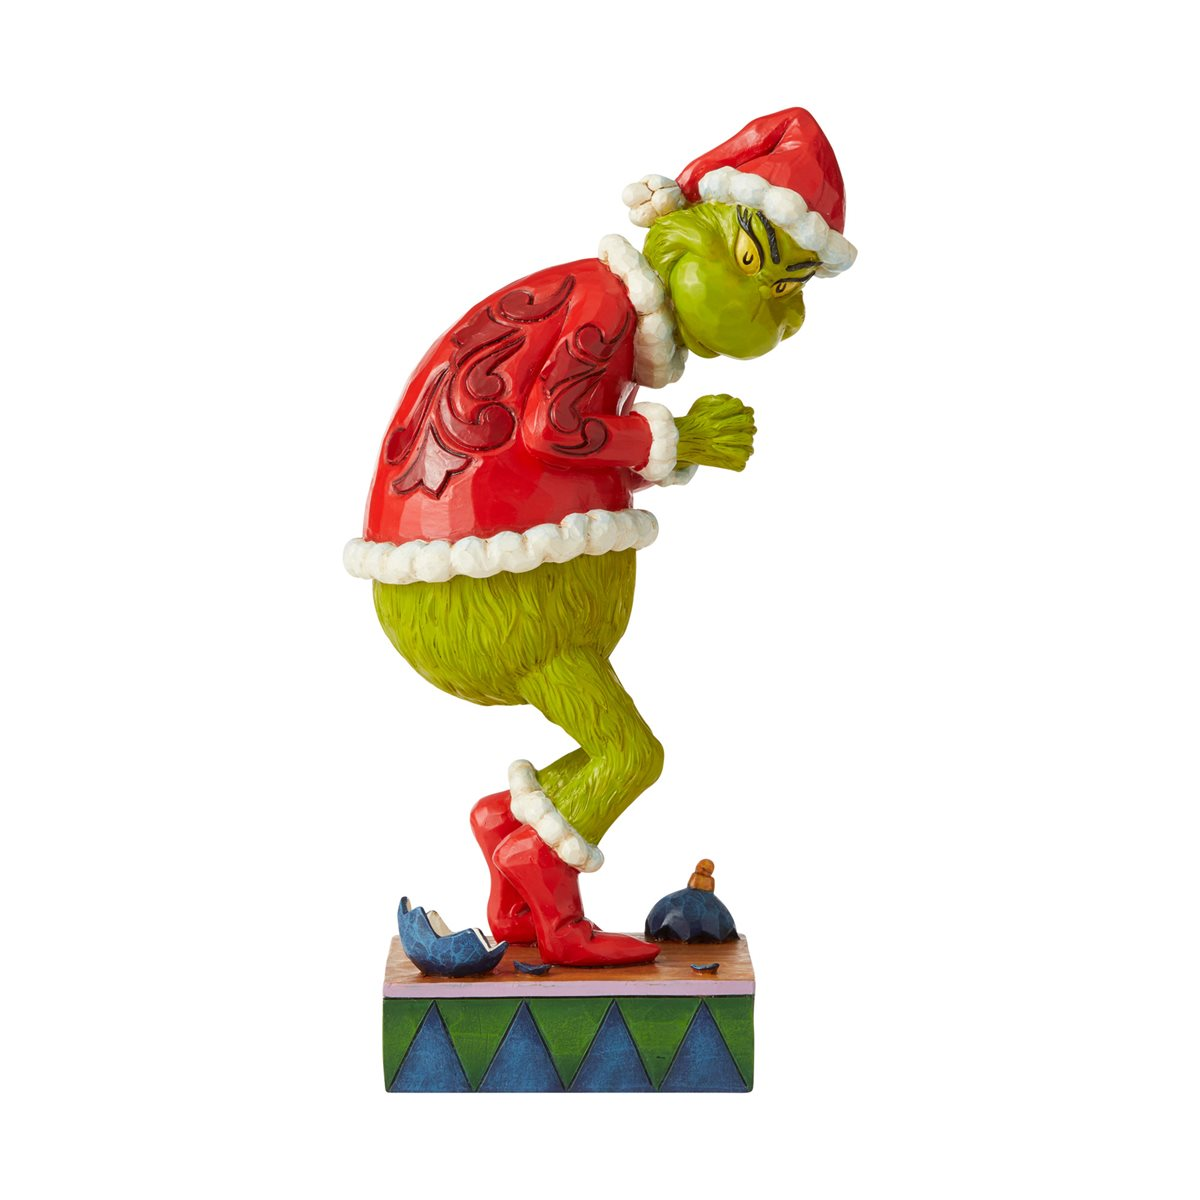 Dr Seuss The Grinch Sneaky Grinch Statue By Jim Shore